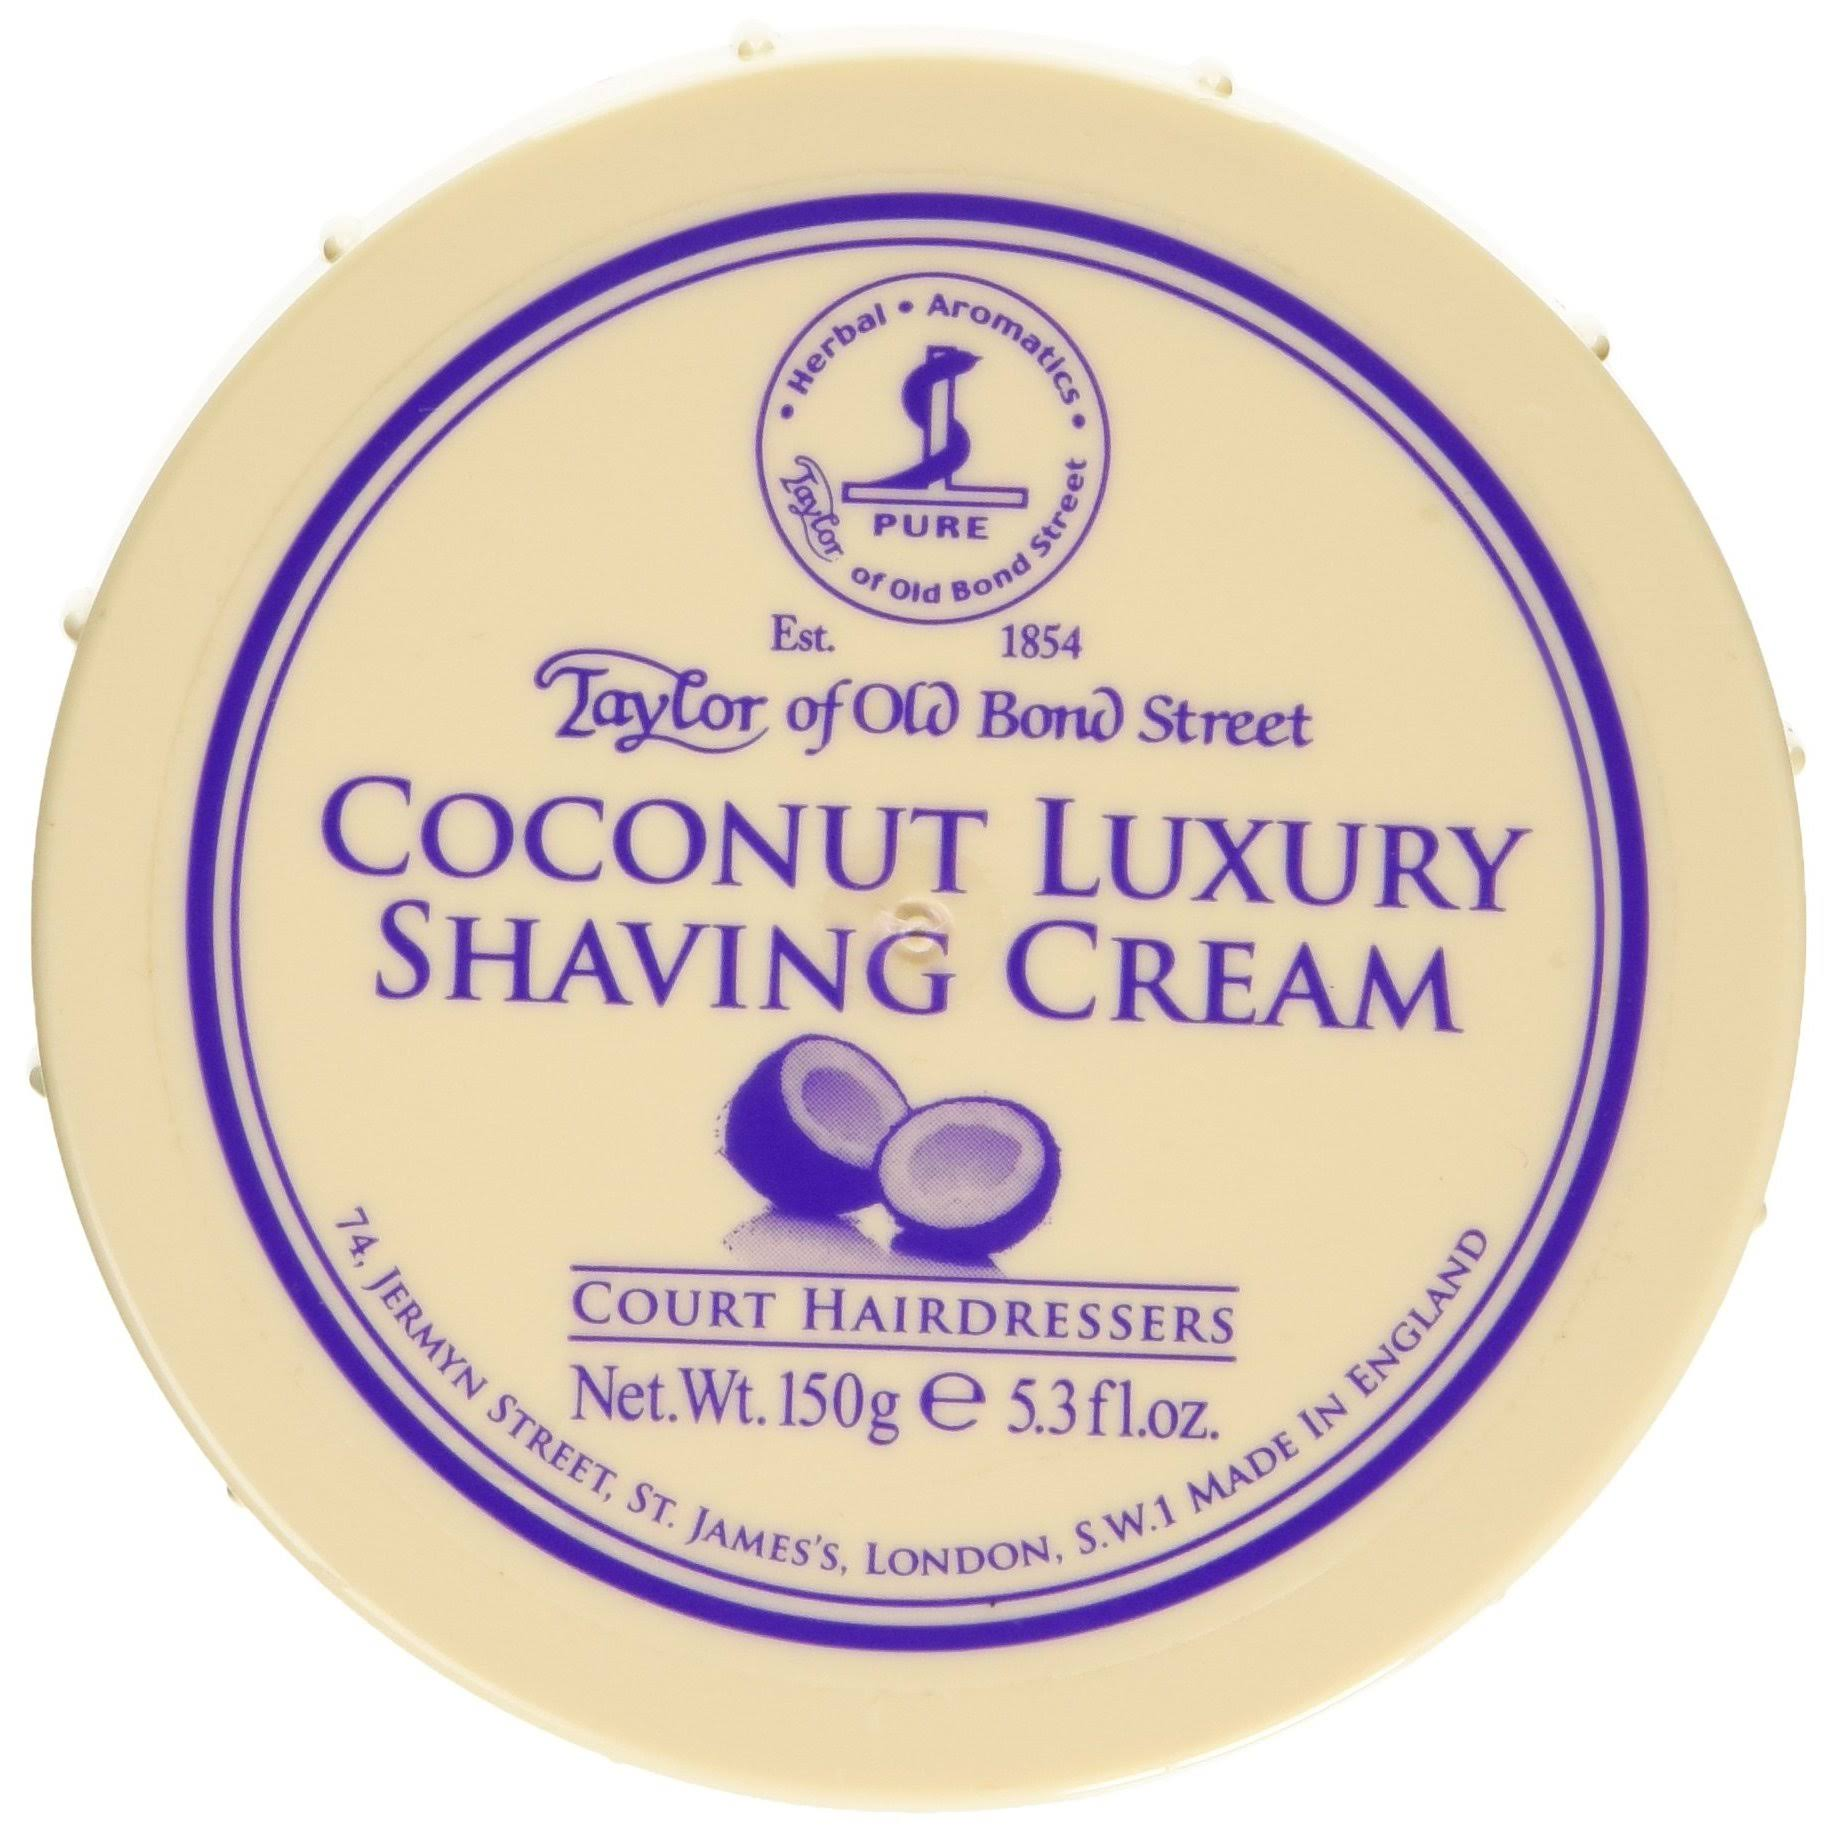 Taylor of Old Bond Street Coconut Shaving Cream Bowl - 5.3oz